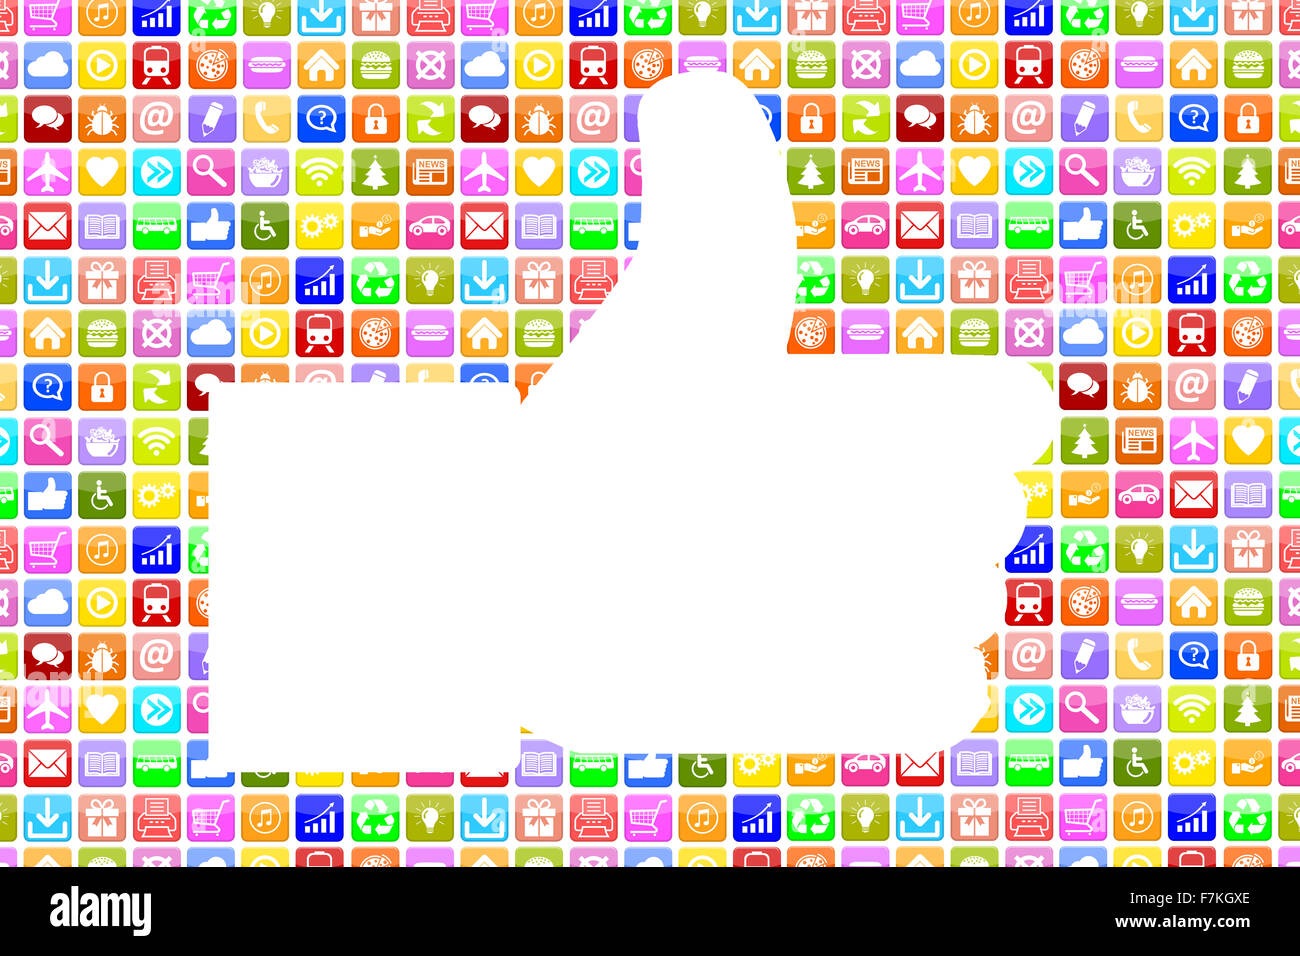 Application Apps App like thumbs up icon social media network on mobile or smart phone - Stock Image